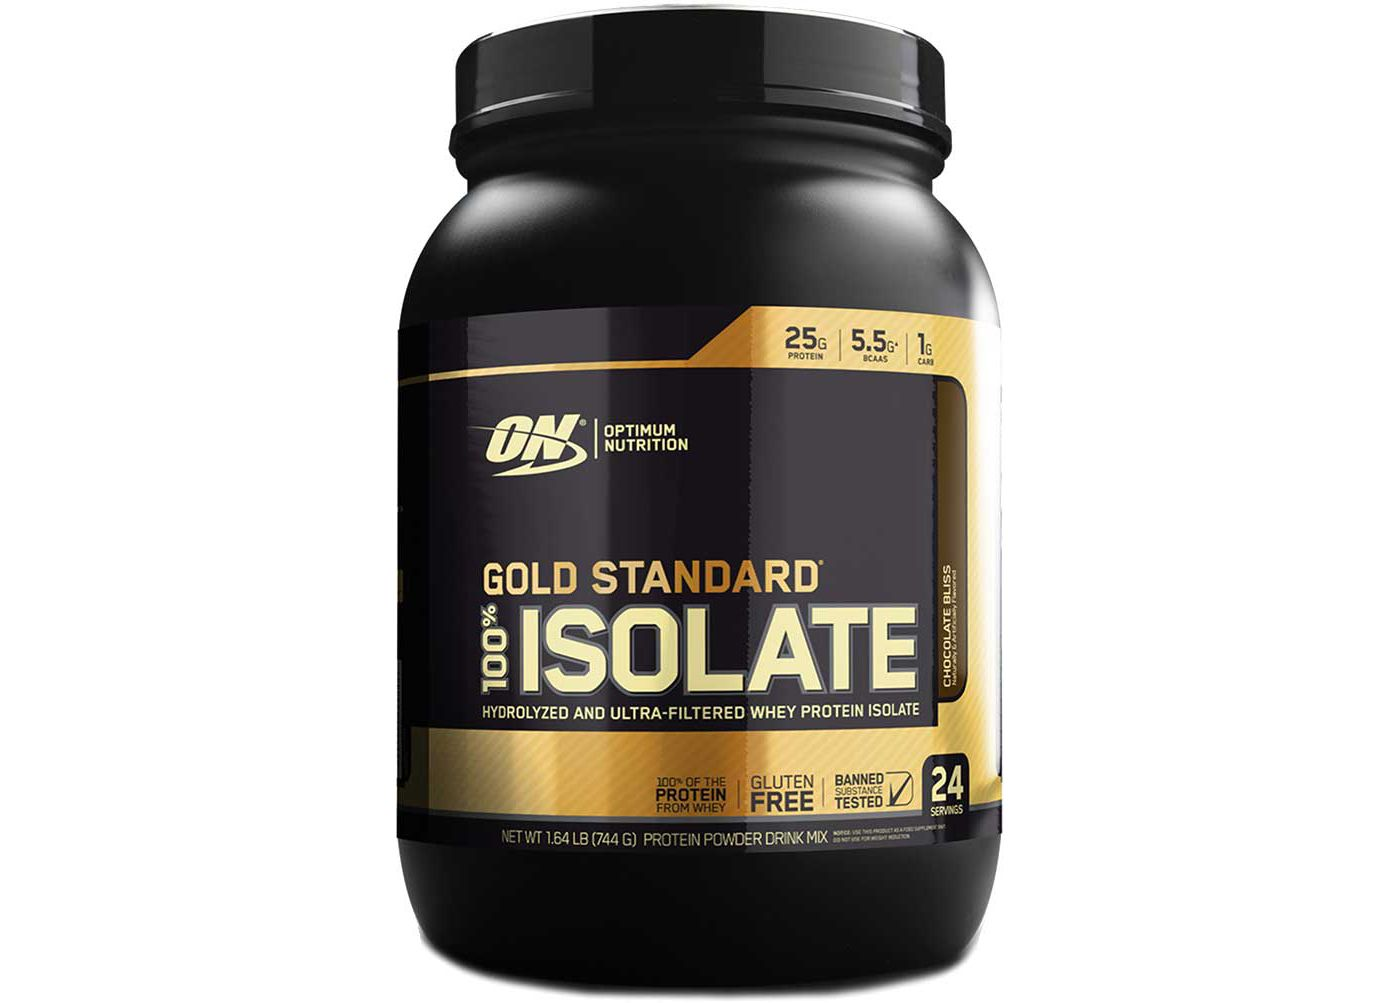 Optimum Nutrition Gold Standard 100% Isolate Protein Powder Chocolate Bliss 24 Servings